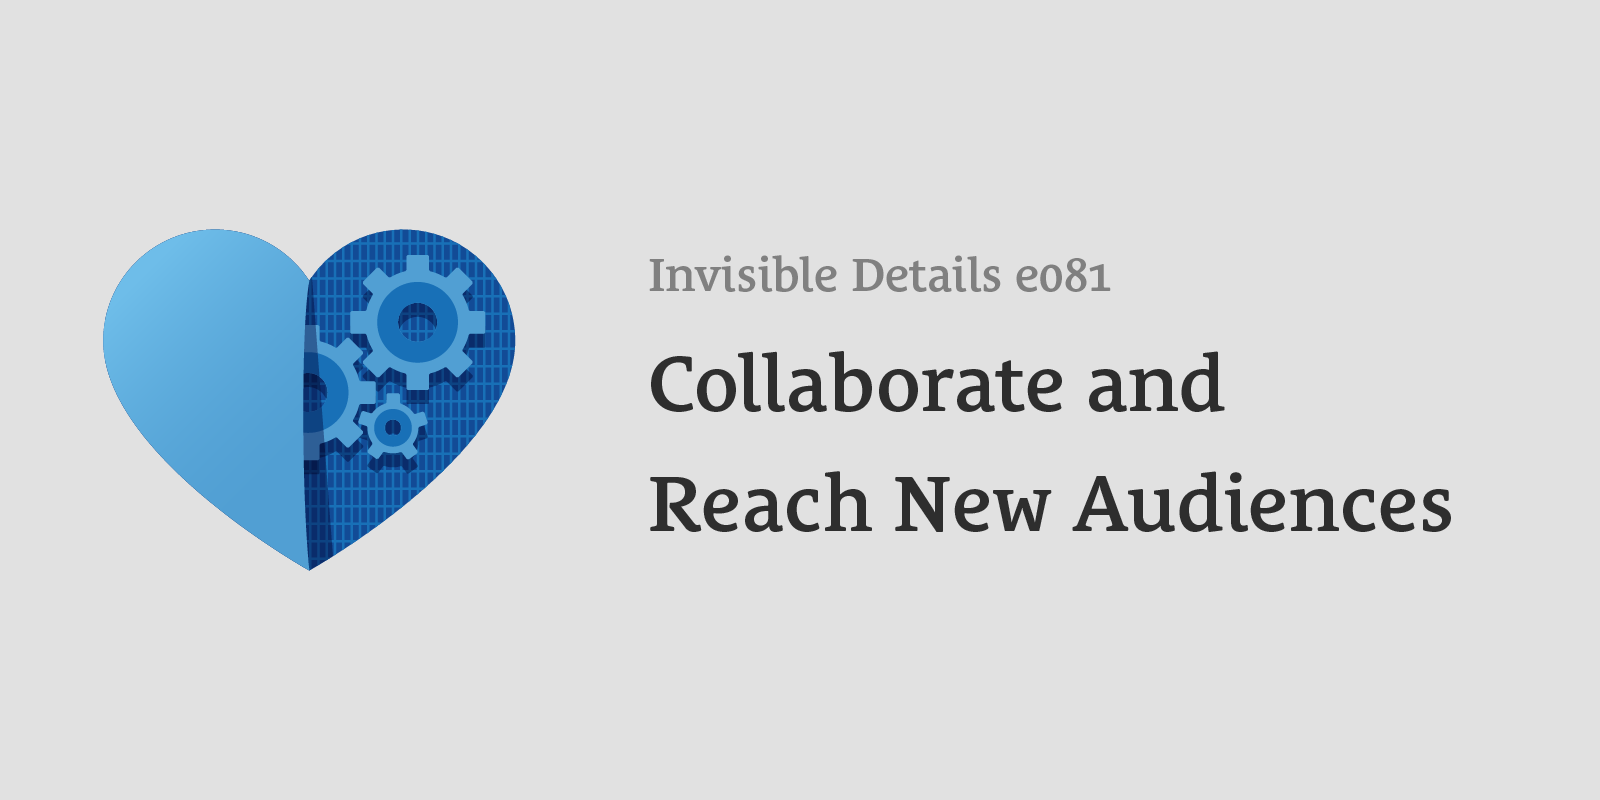 Collaborate and Reach New Audiences